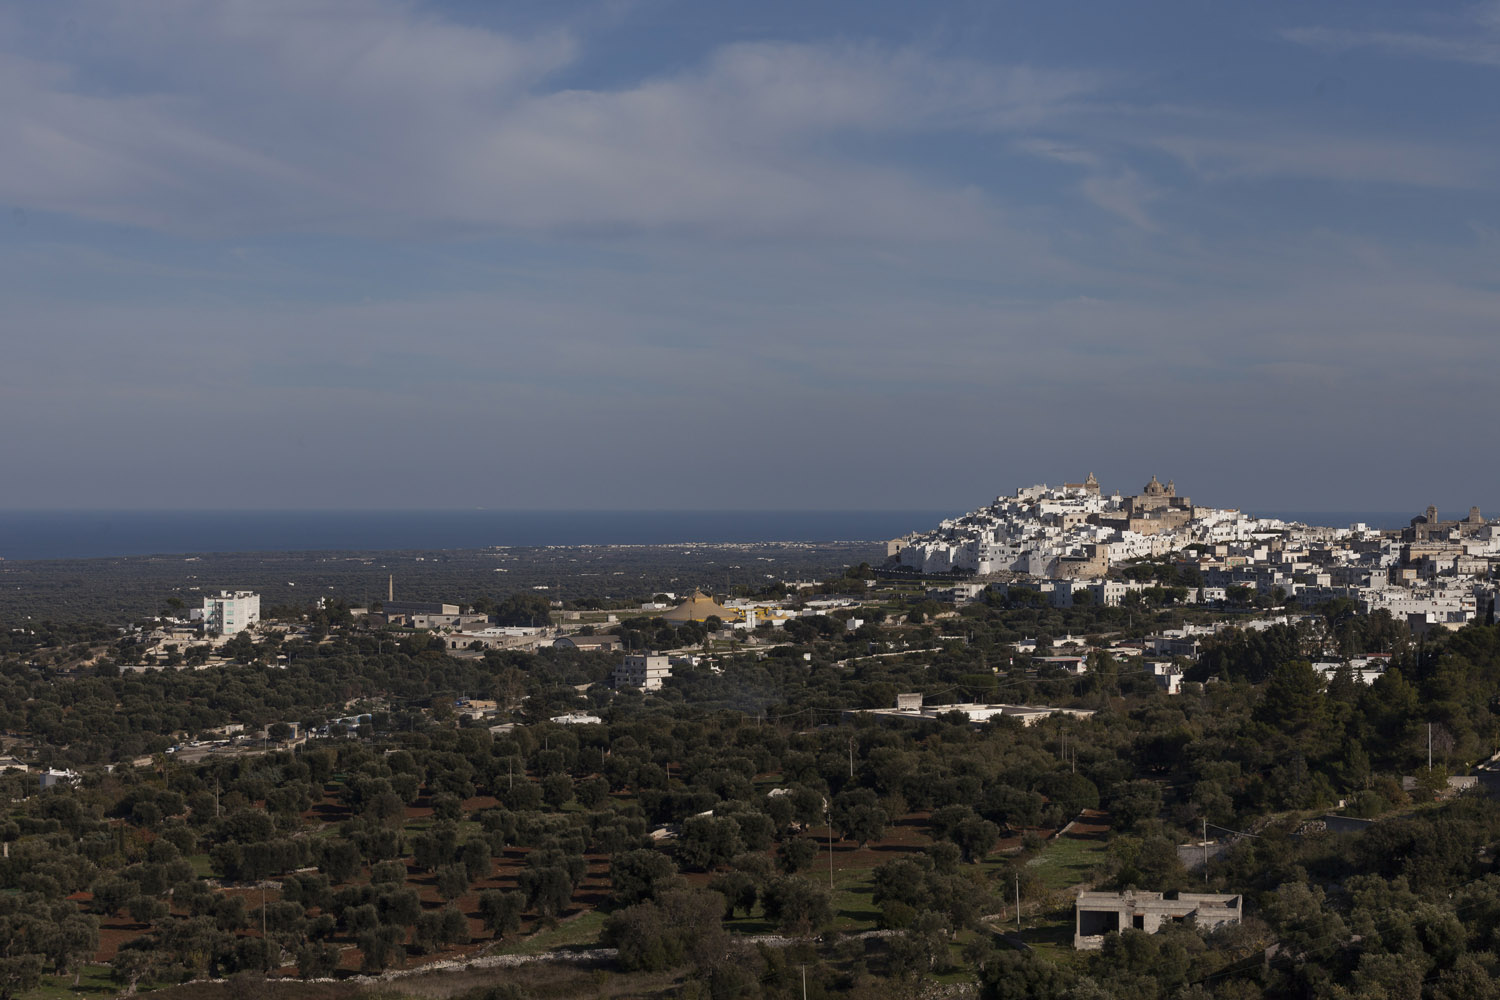 "The town of Ostuni rises above the ""Piana degli Ulivi"" (the plain of the olive trees), an endless expanse of olive groves that stretches all the way to the sea, and is currently in the containment zone of the Xylella fastidiosa outbreak. (2017)"